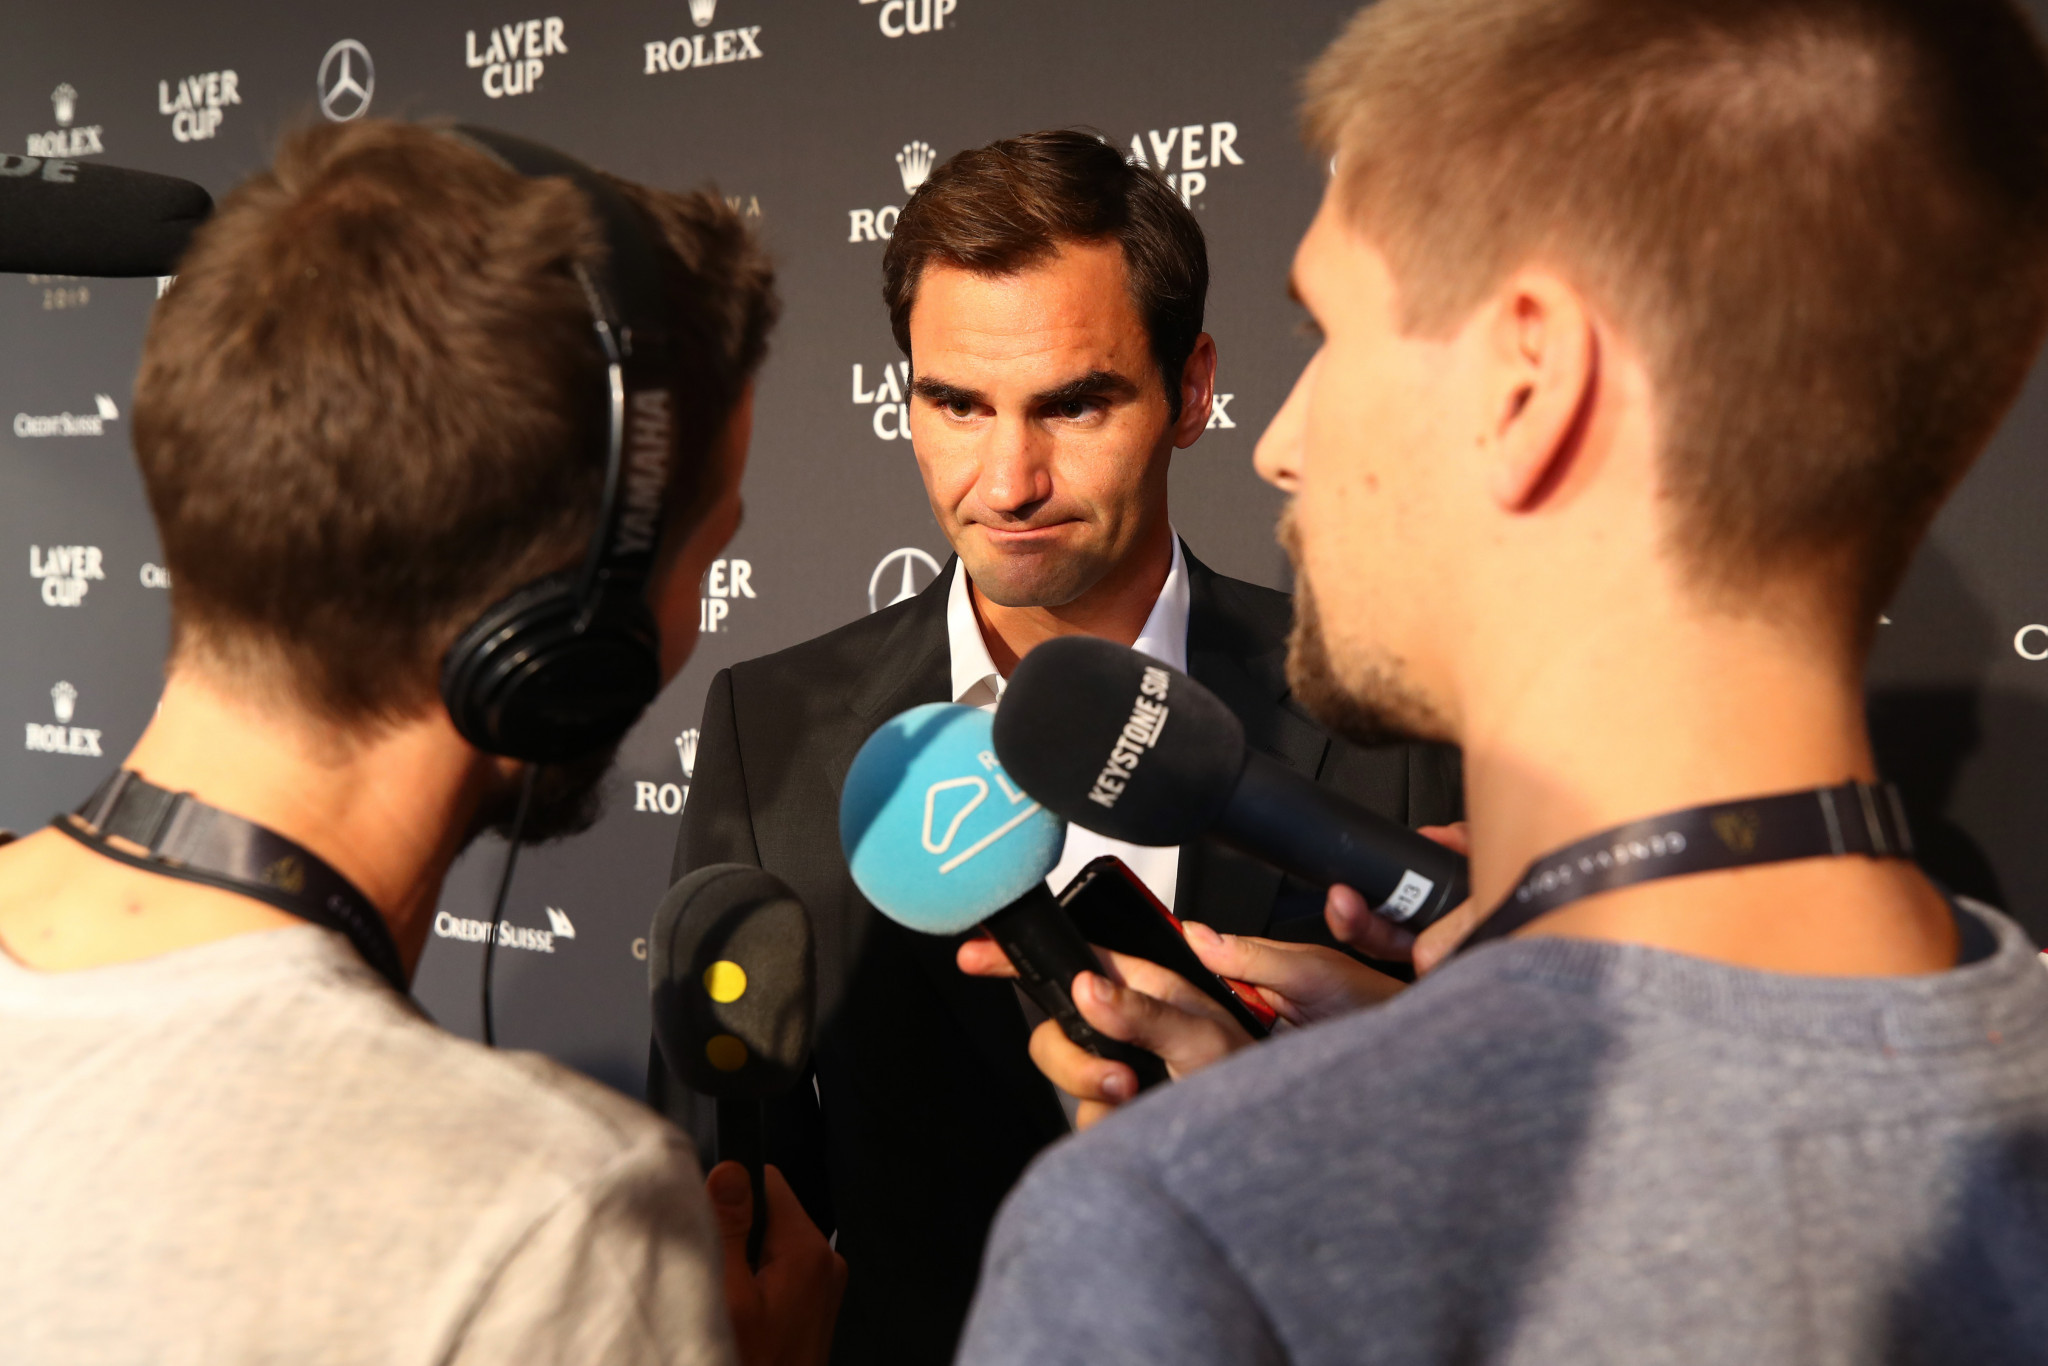 Federer keeping Tokyo 2020 Olympic organisers guessing